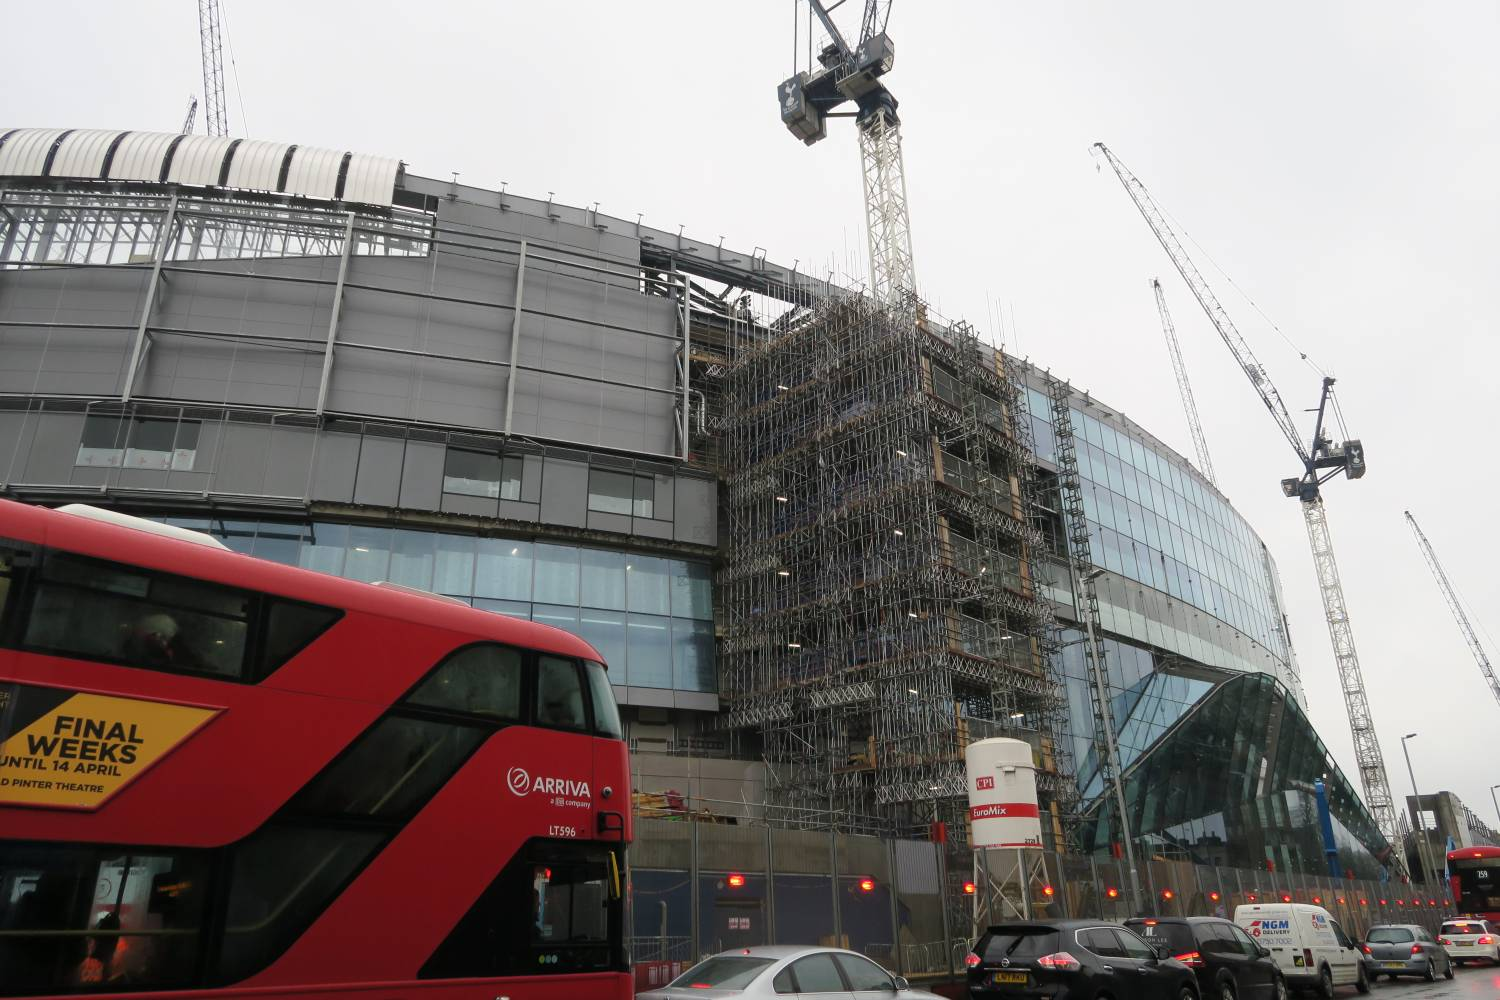 Construction and London Bus New Spurs Stadium